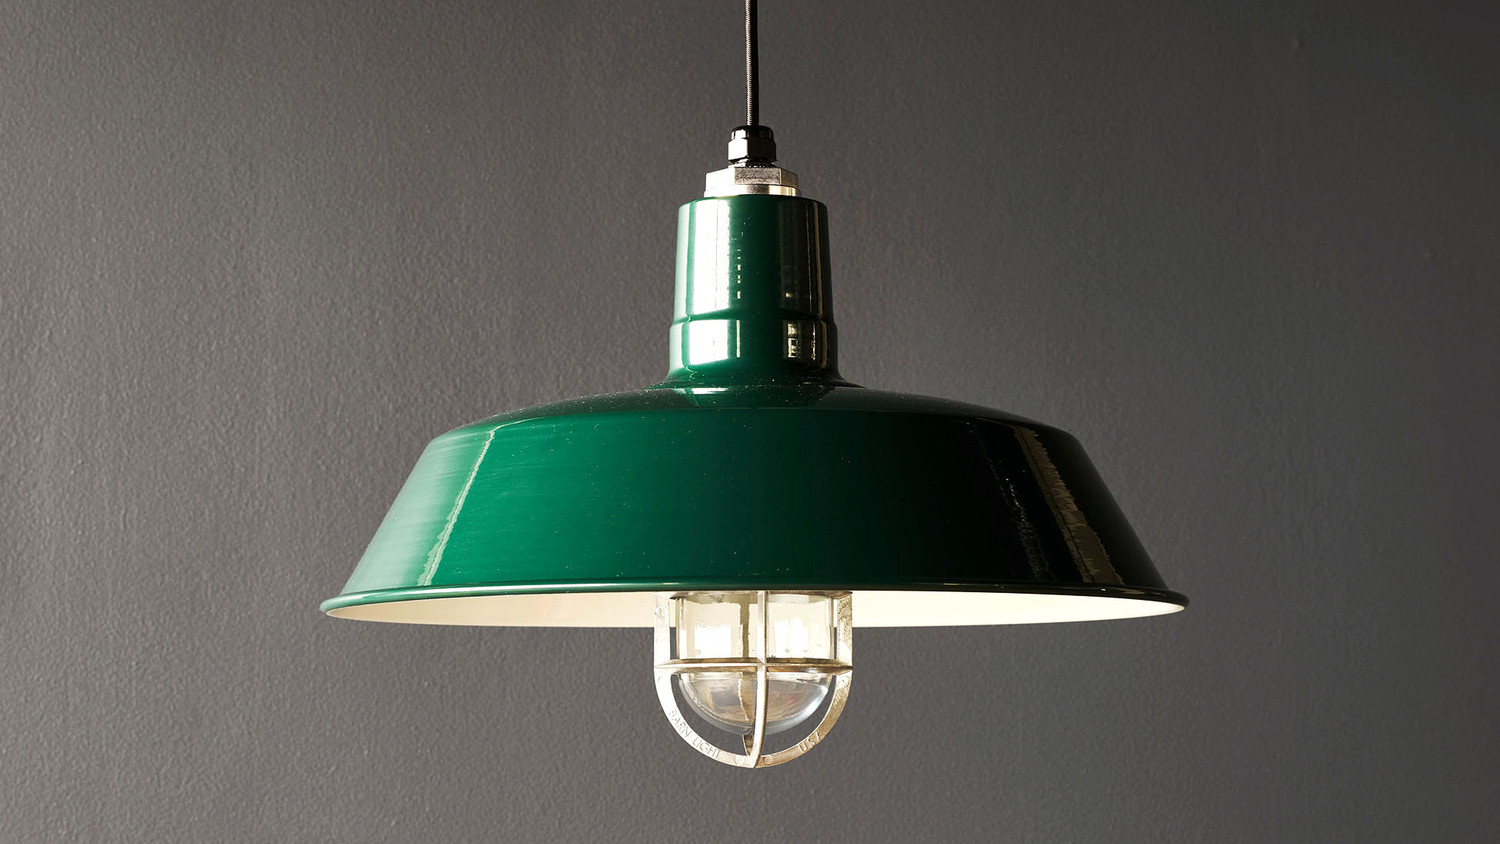 Special Prices On Willa Arlo Interiors Gregoire 3 Light Intended For Gregoire 6 Light Globe Chandeliers (View 24 of 30)